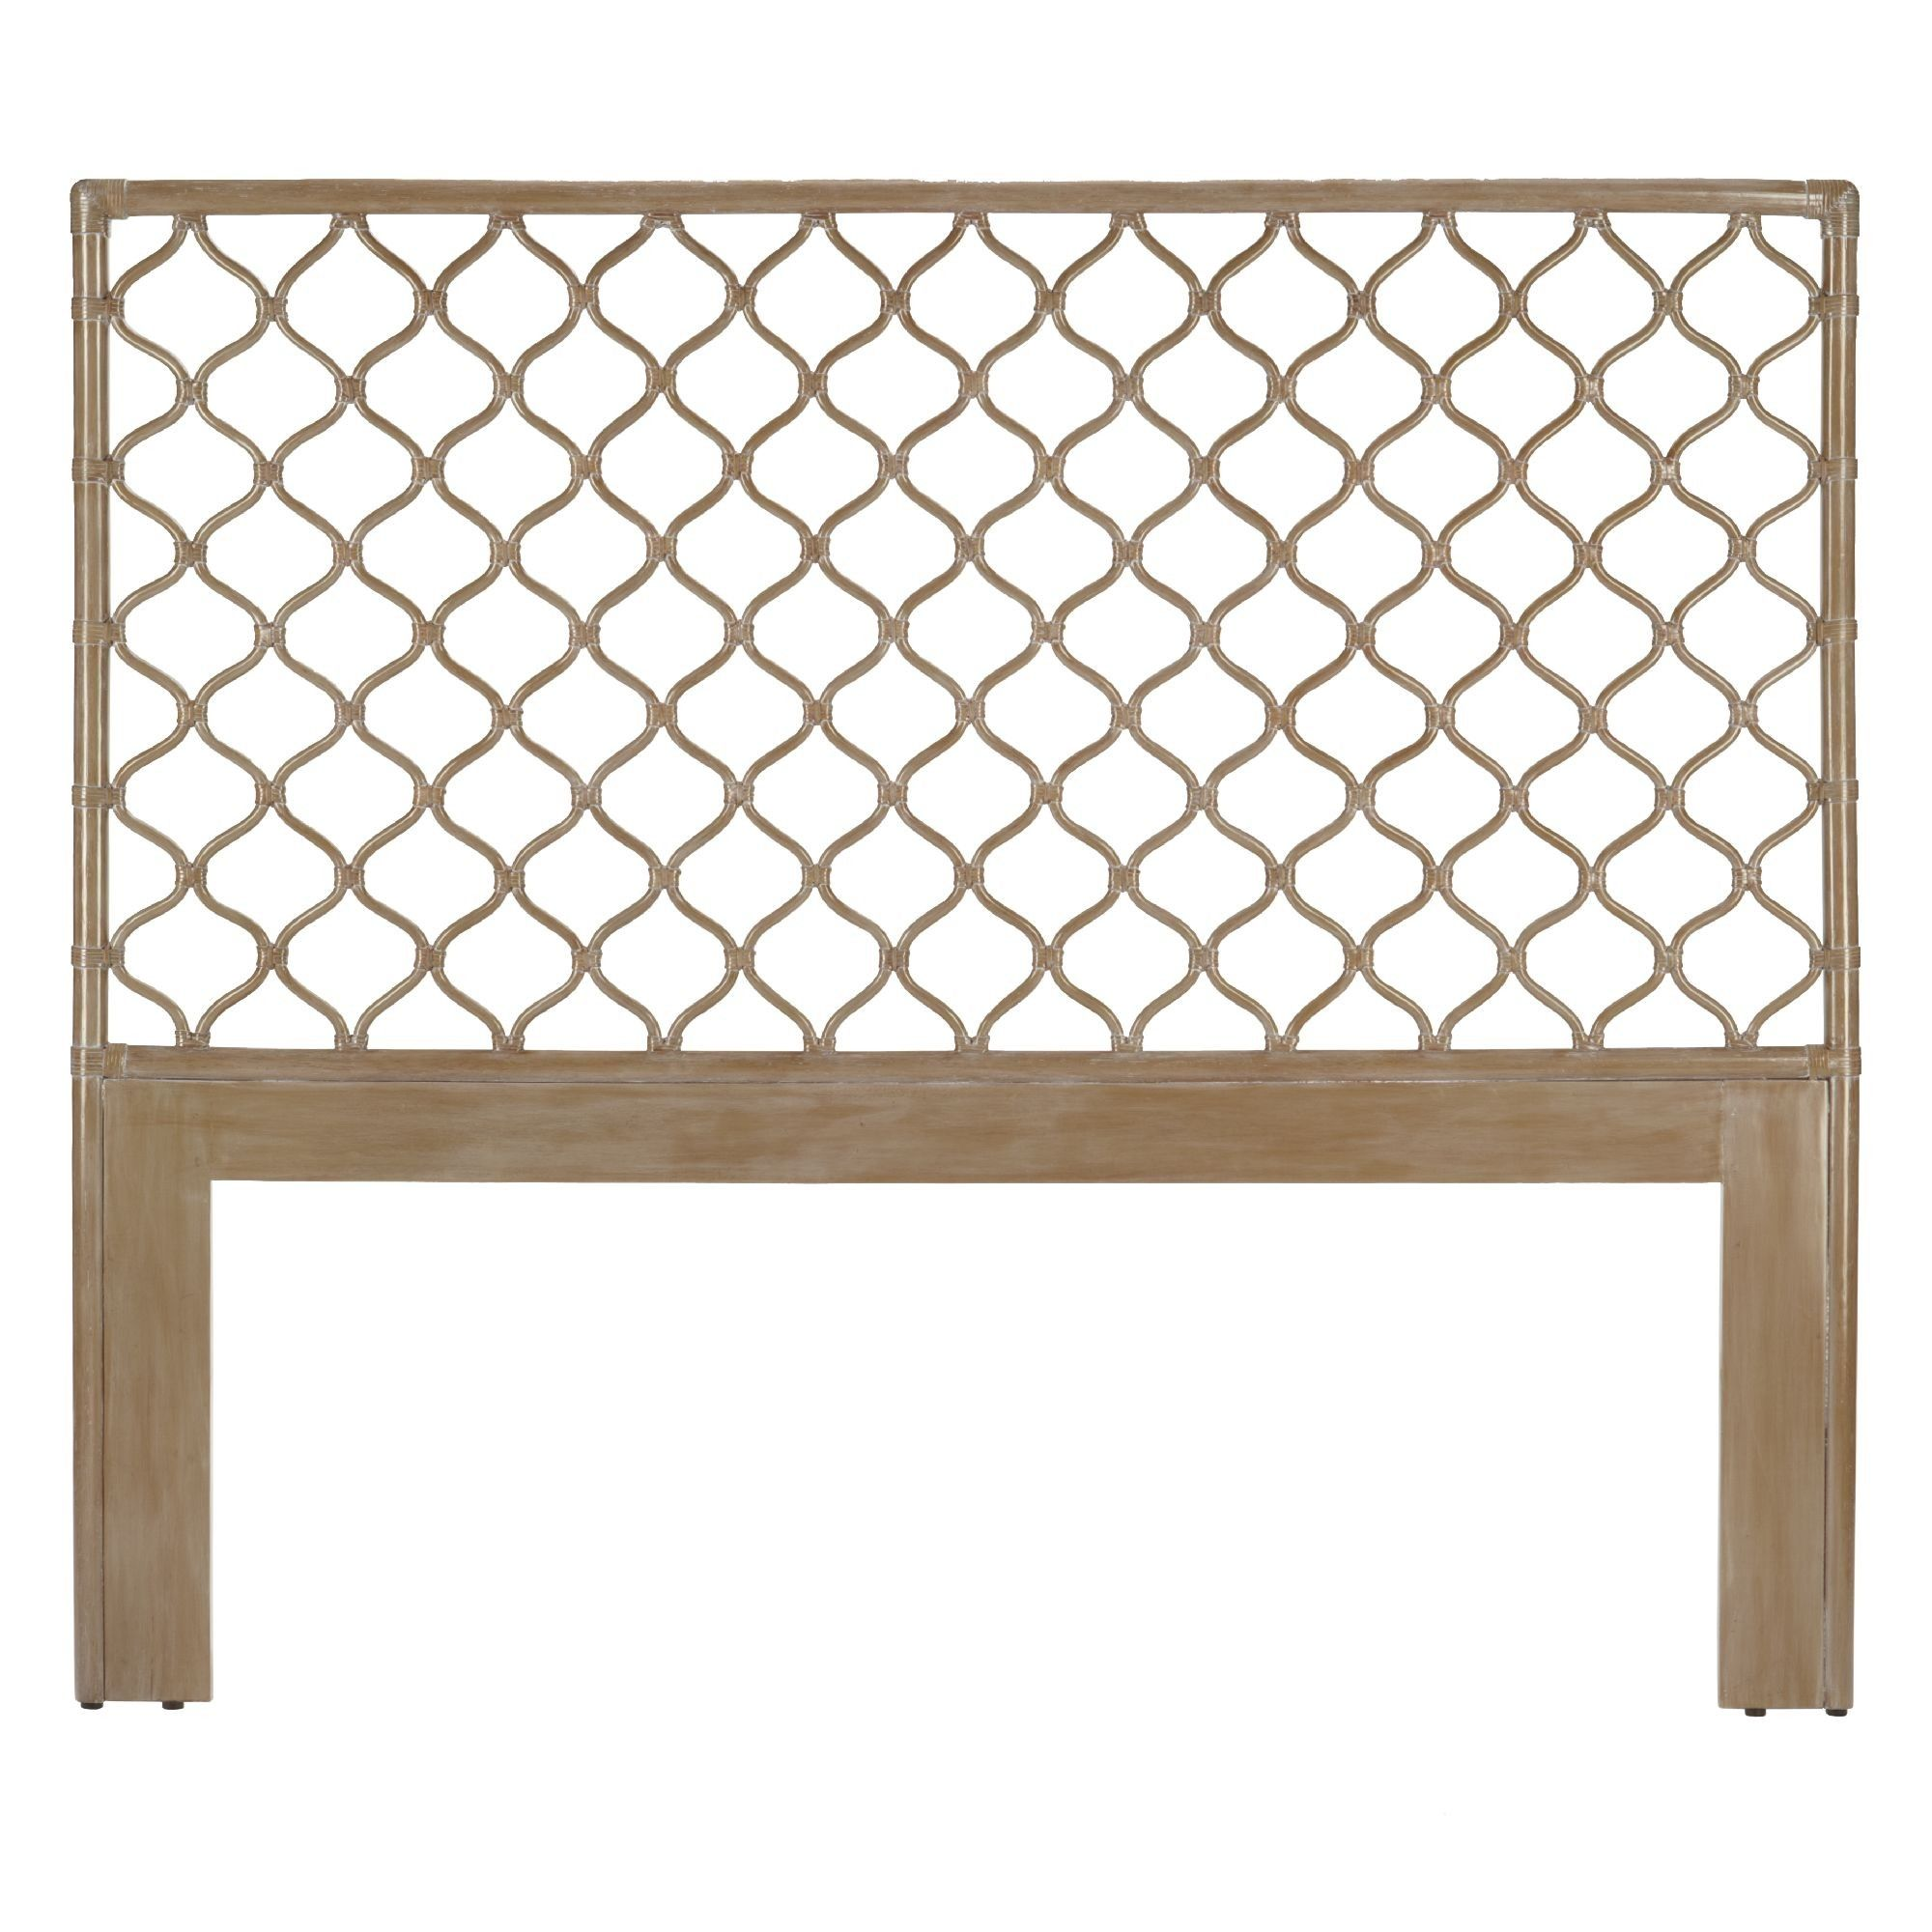 Leather wrapped rattan pole headboard creates graphic airy textured dcor with Berber inspired lattice. Pair with wood or rattan to create a unique bedroom environment.